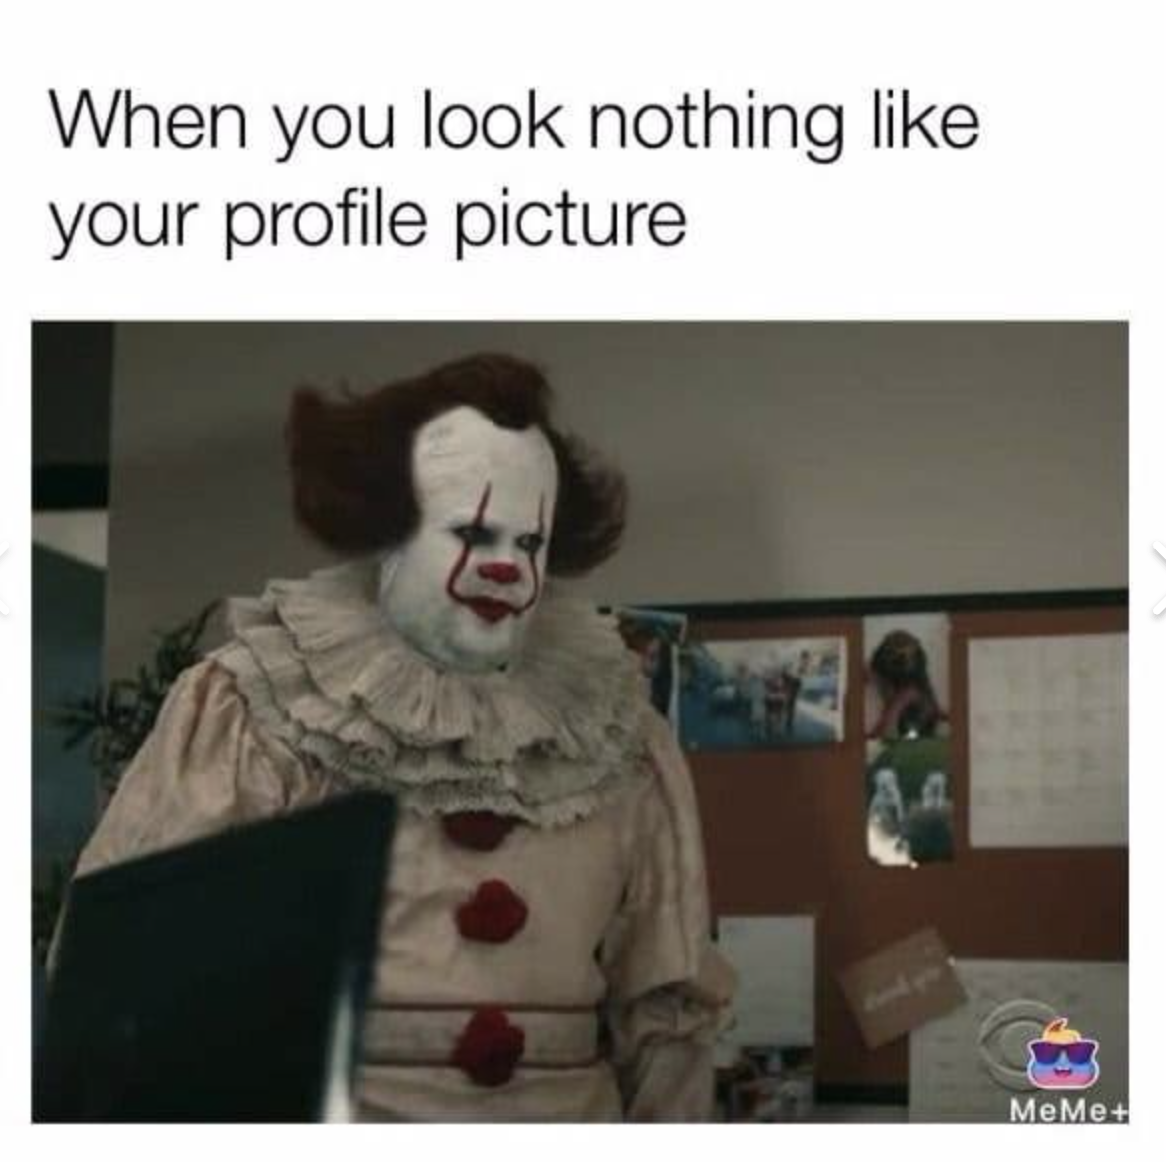 35 Great Pics And Memes To Improve Your Mood Funny Halloween Memes Horror Movies Funny Horror Movies Memes